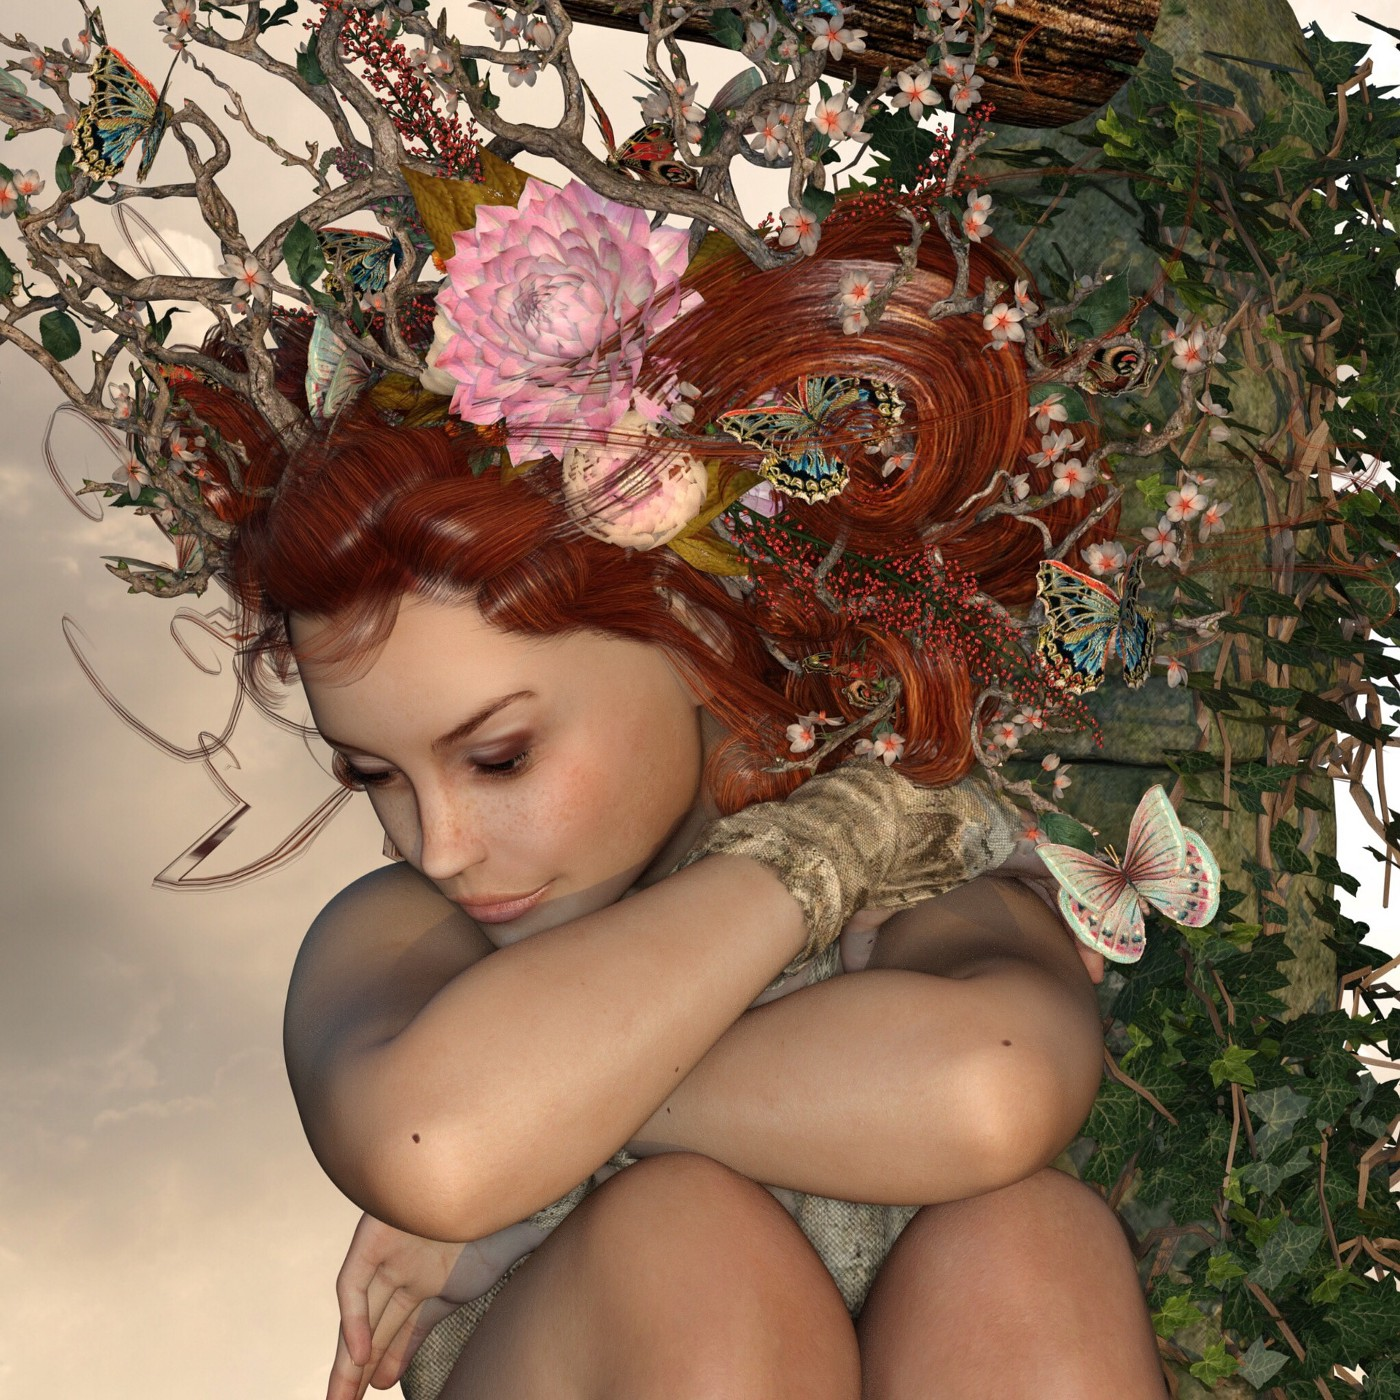 Artwork of a woman with nature crown of branches and flowers